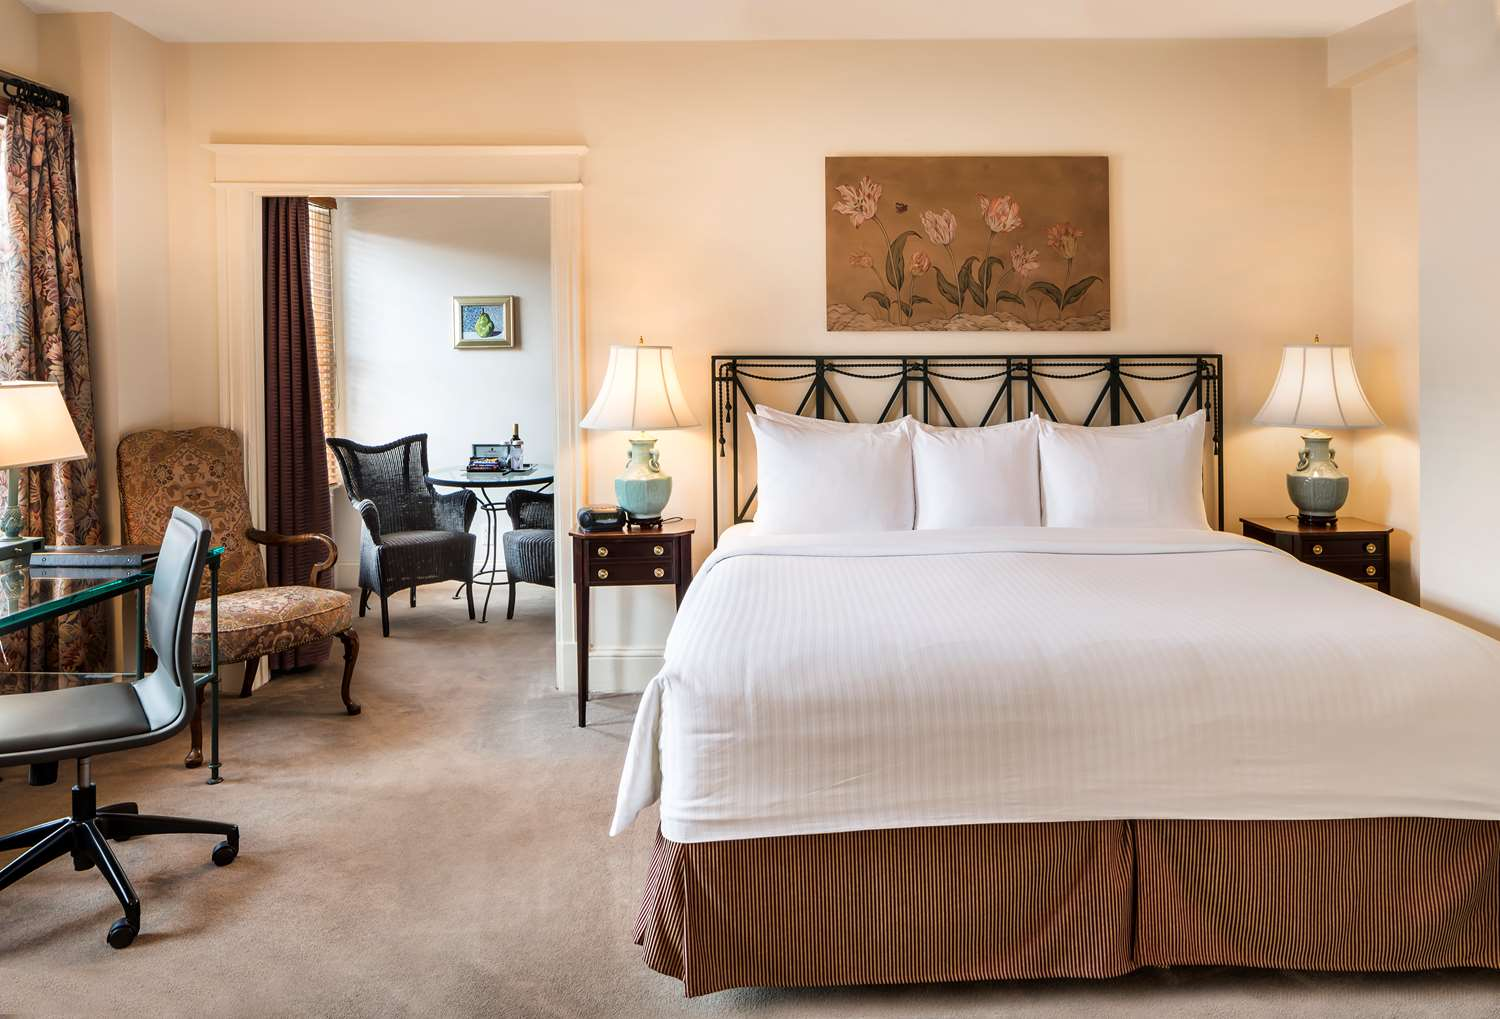 Hotel Lombardy DC. DC - See Discounts